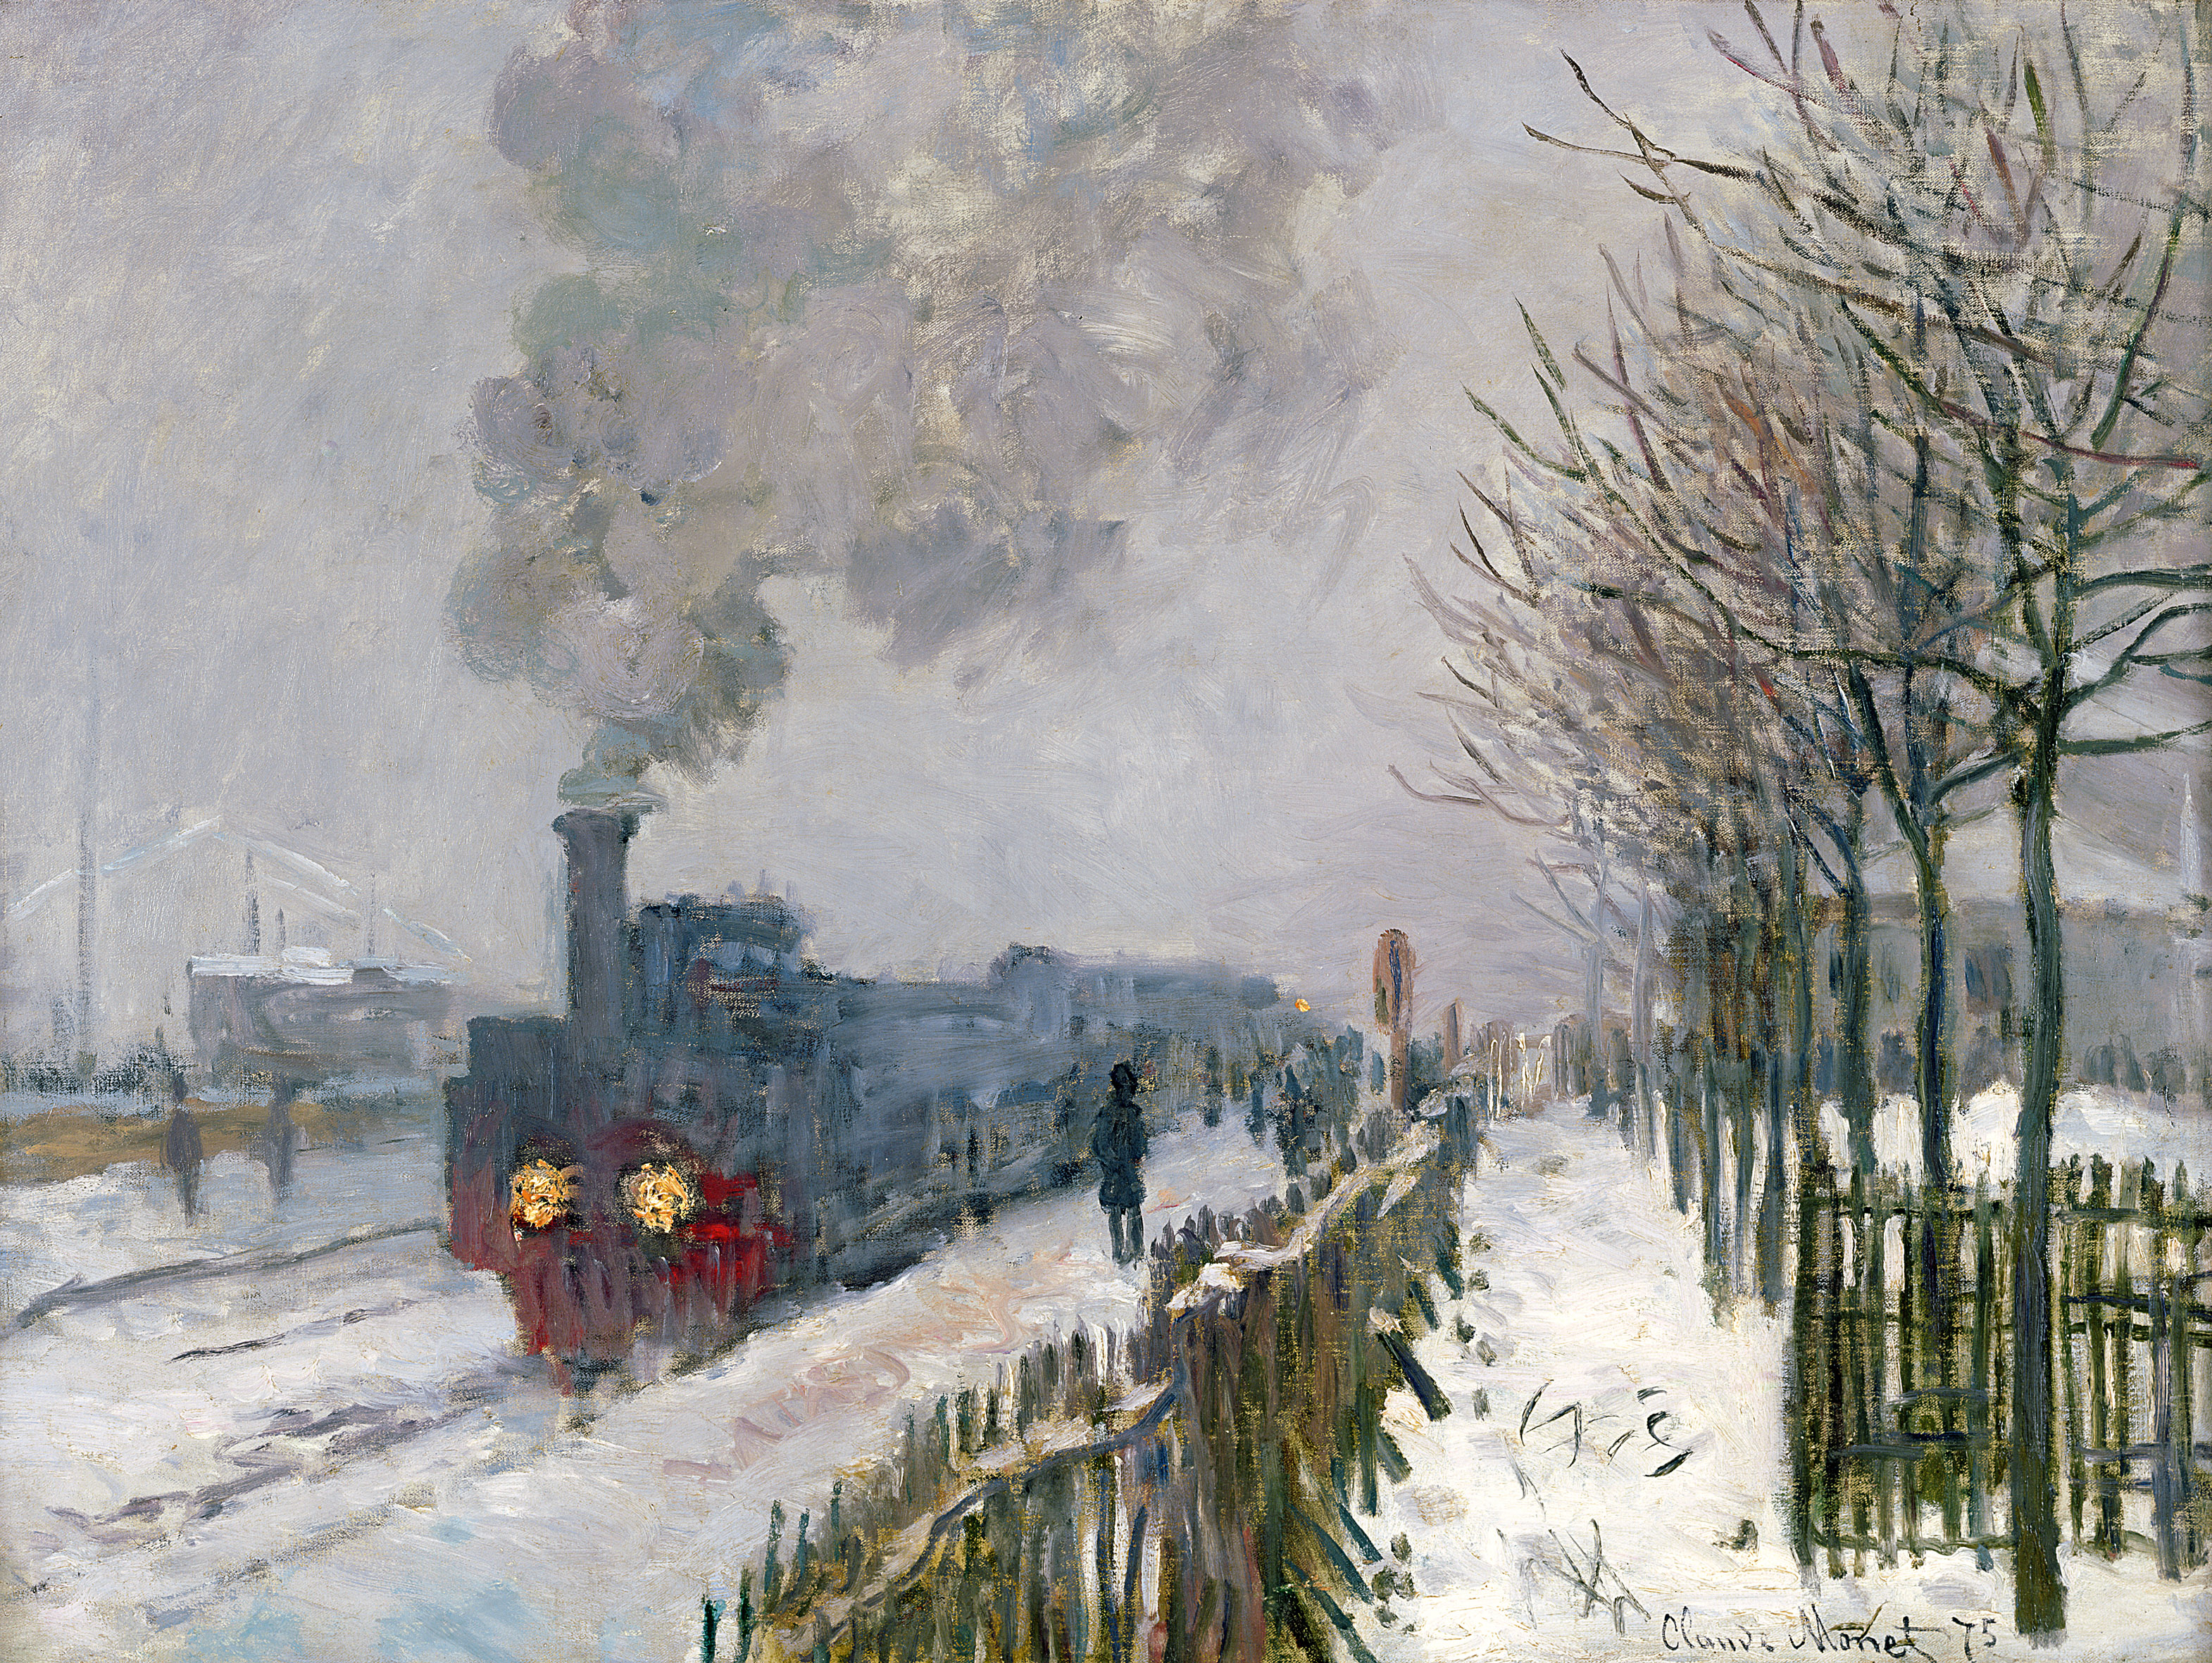 MMT 7218                                 Train in the Snow or The Locomotive, 1875 (oil on canvas)                                 Monet, Claude (1840-1926)                                 MUSEE MARMOTTAN MONET, PARIS, ,